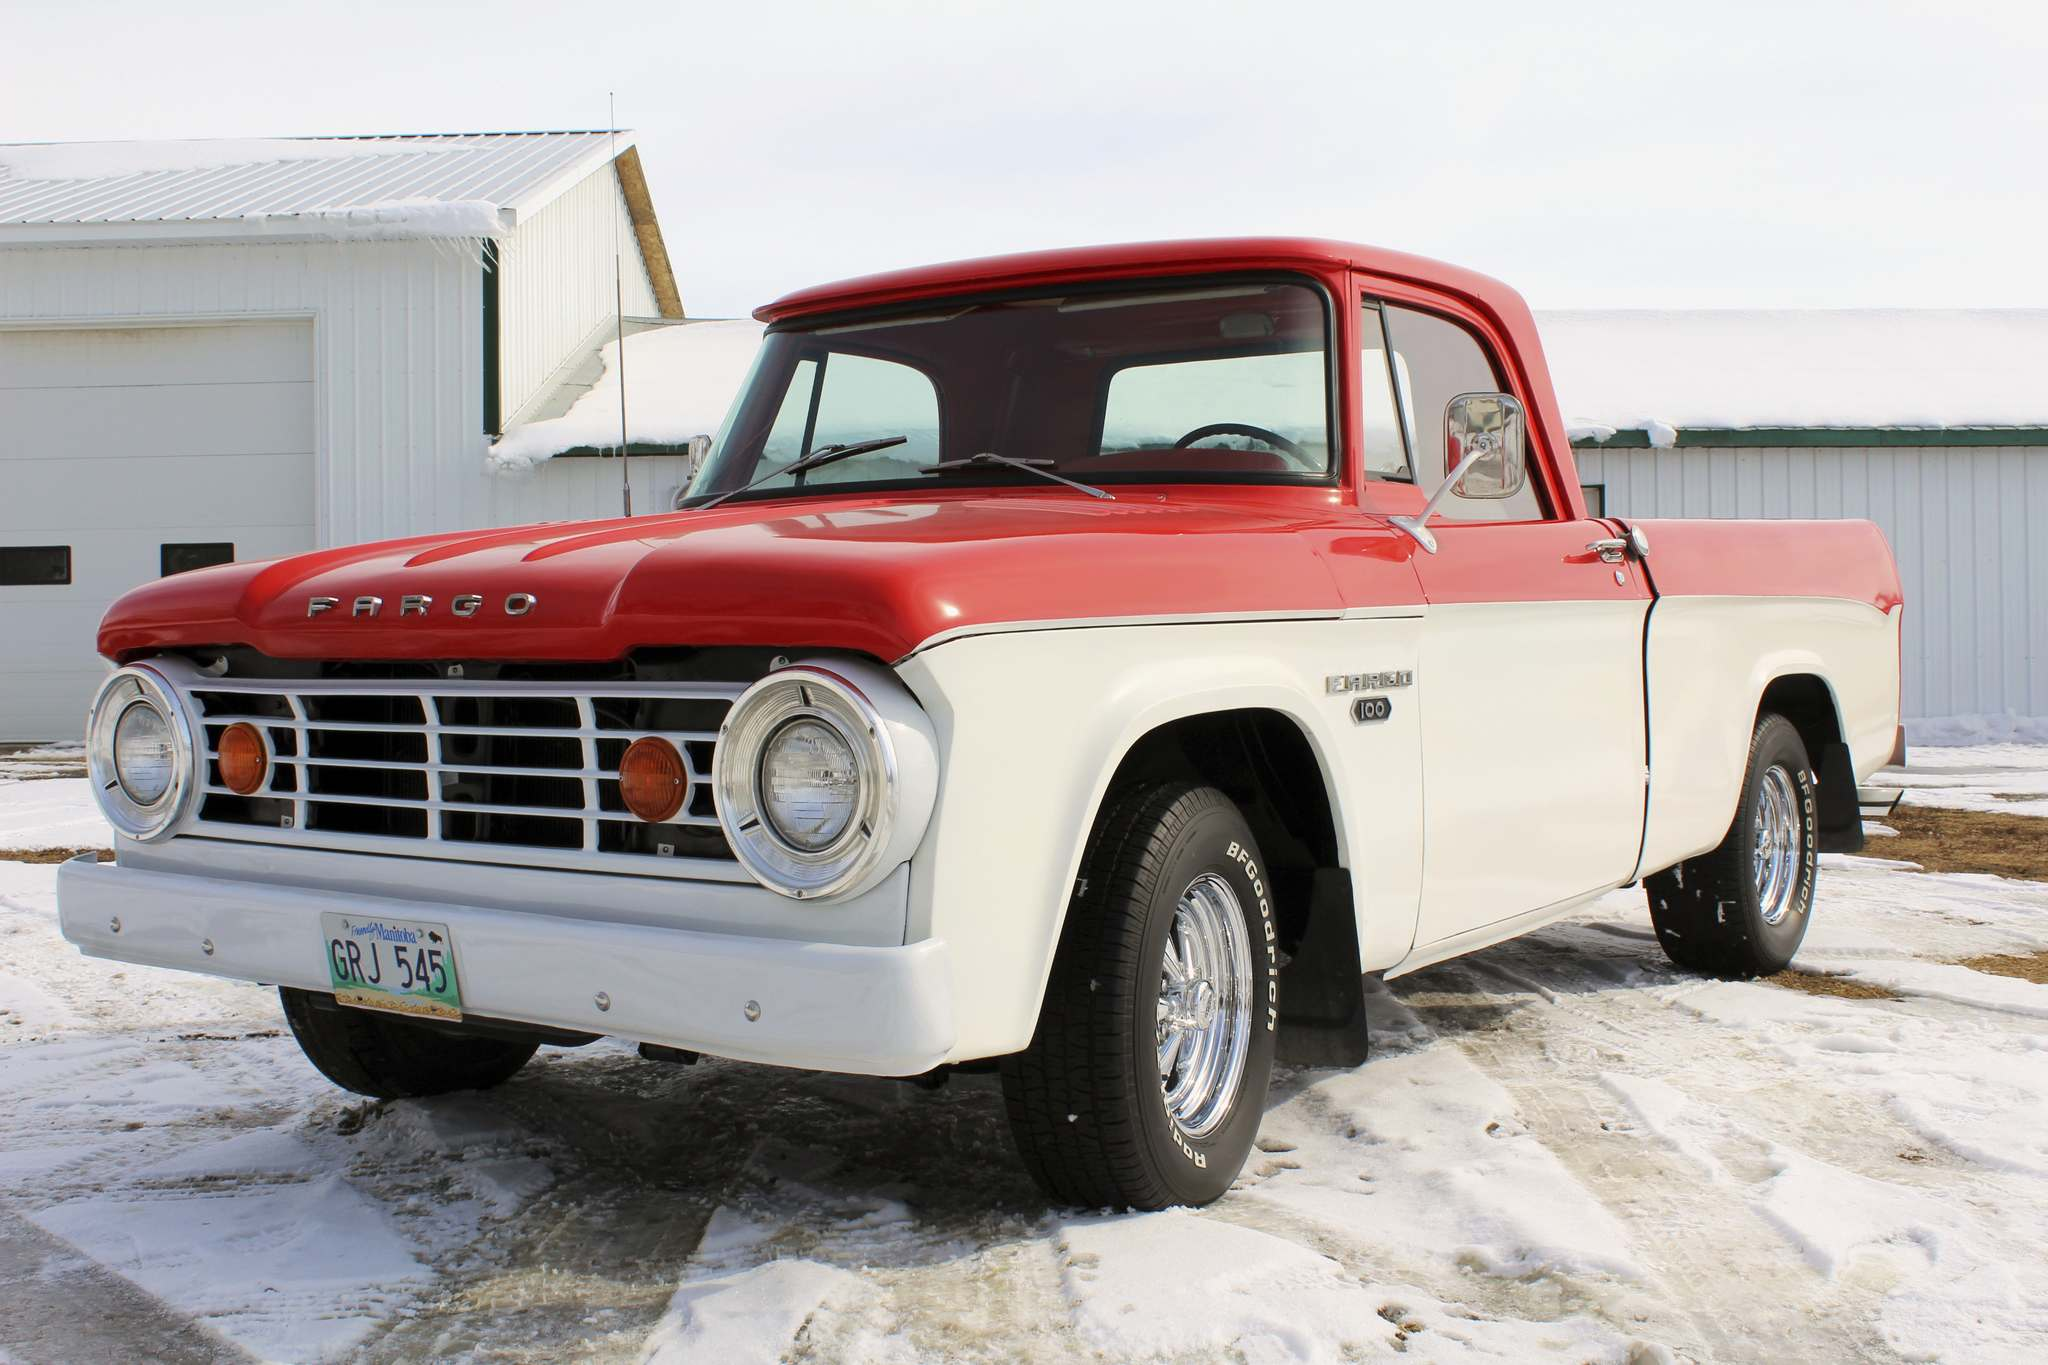 Photos by Larry D'Argis / Winnipeg Free PressThe Fargo short-box pickup is a rare find, but Rick Giesbrecht of Stephenfield has fully restored one that he bought in 2011.